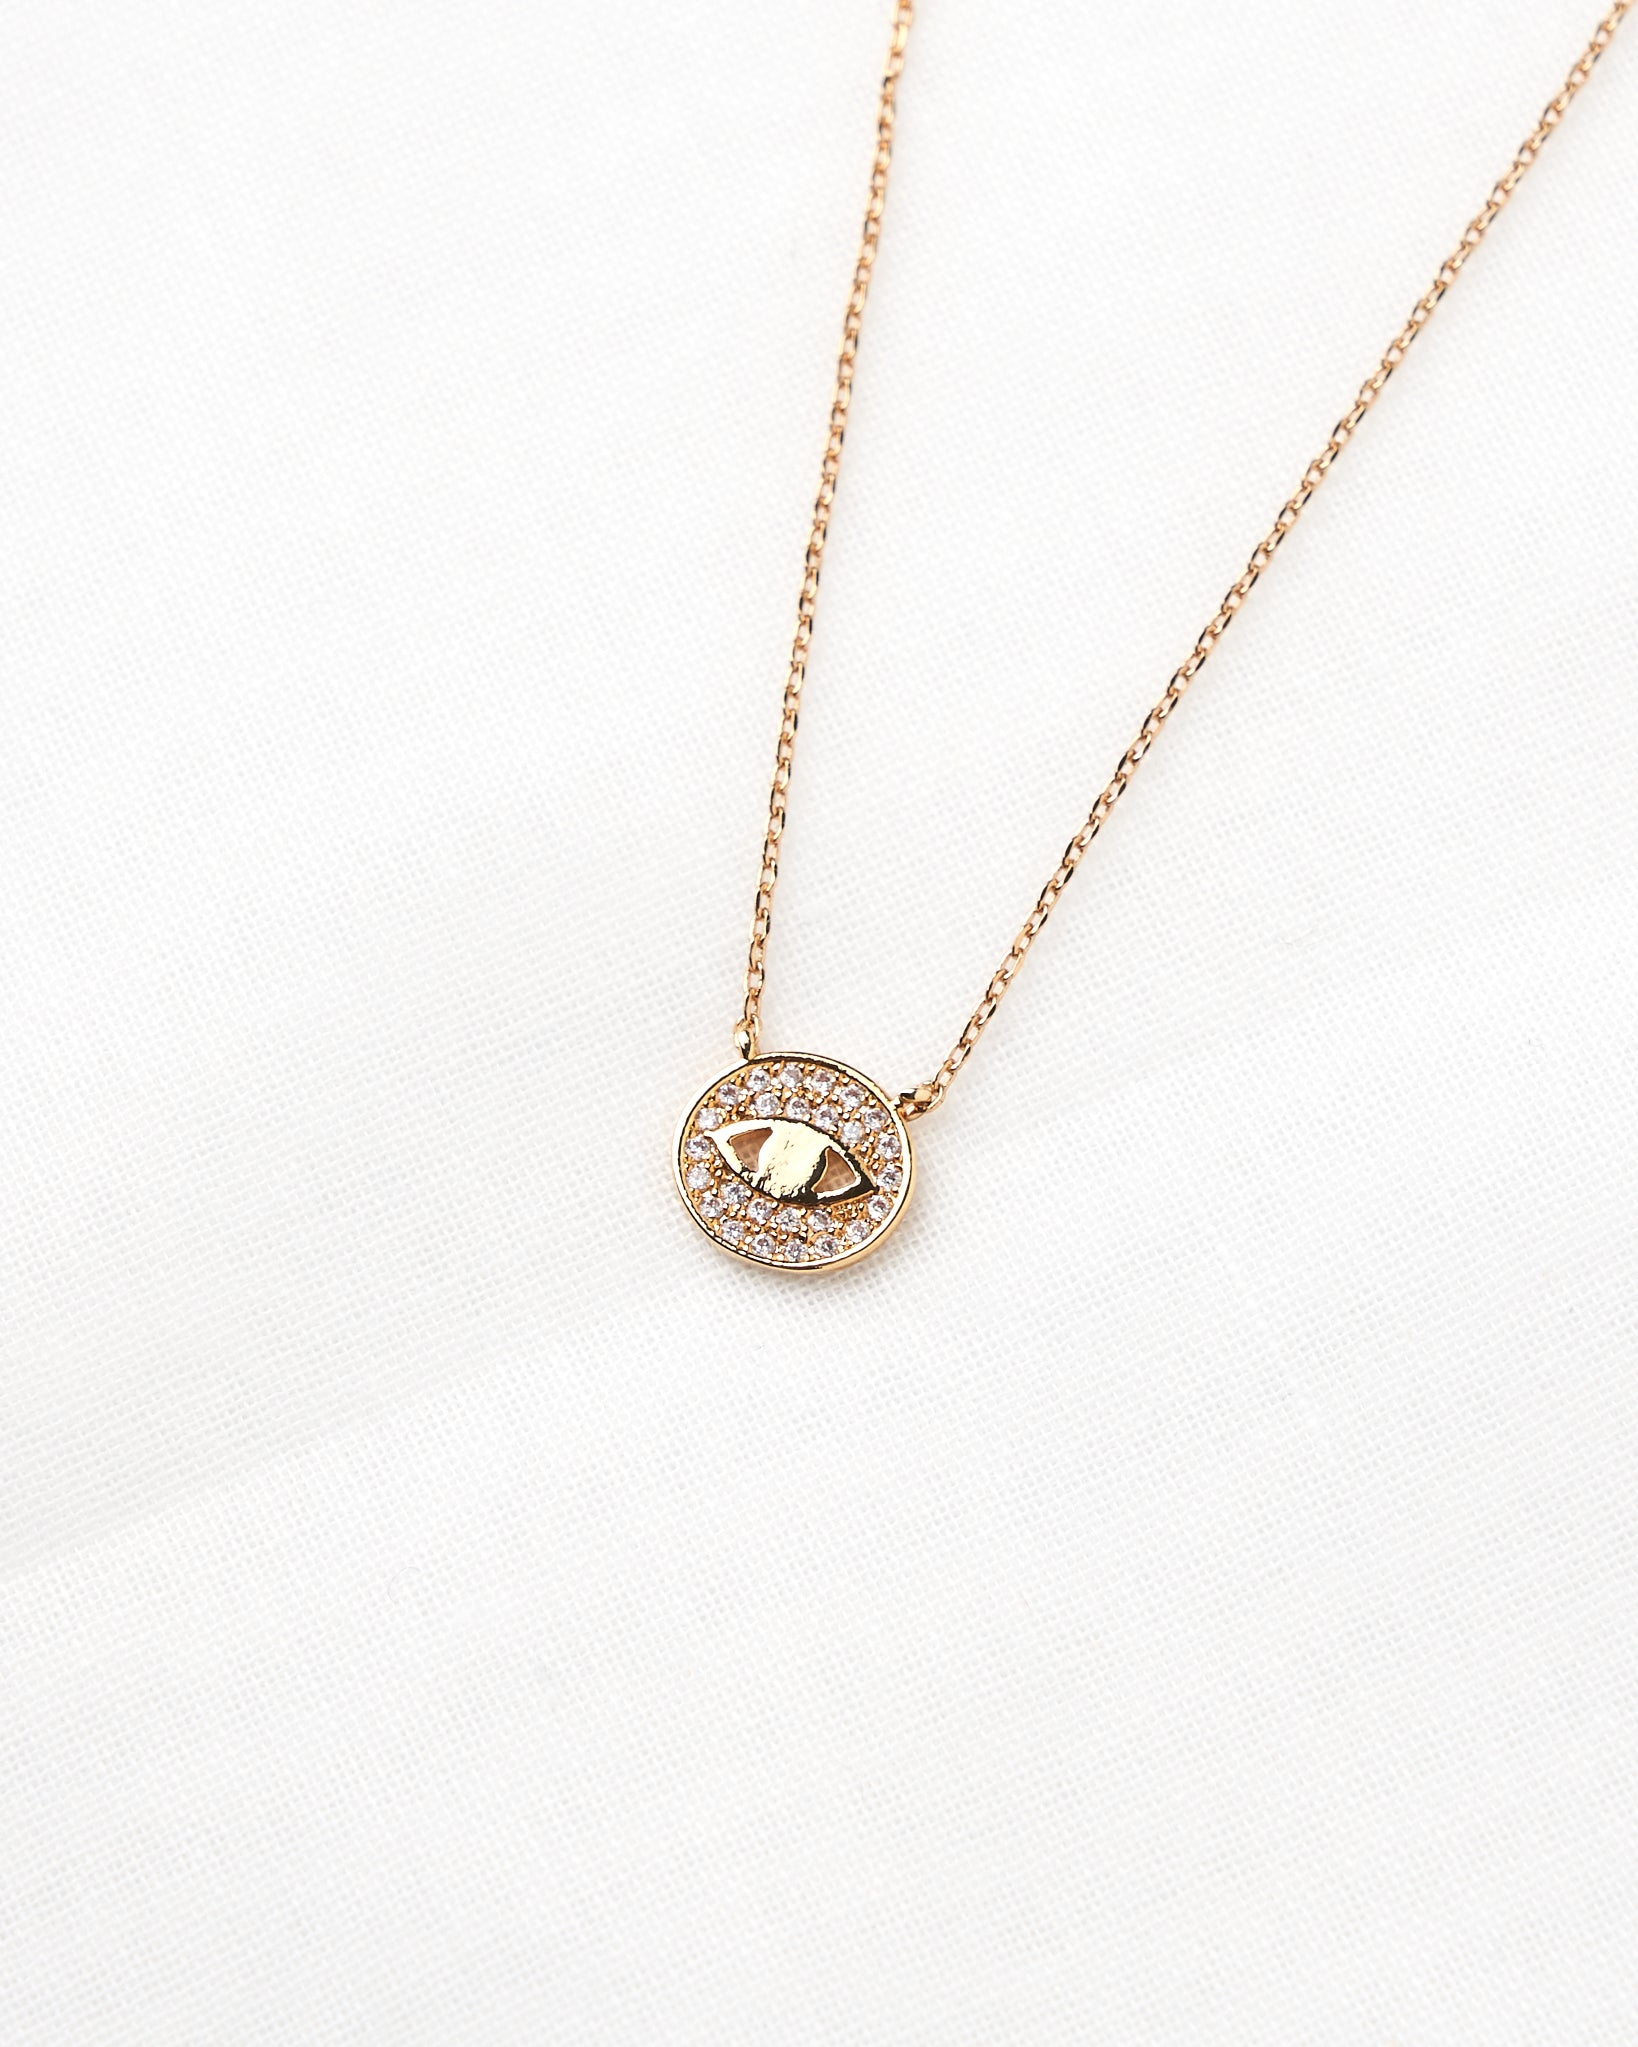 14K Detailed Eye Chain Necklace